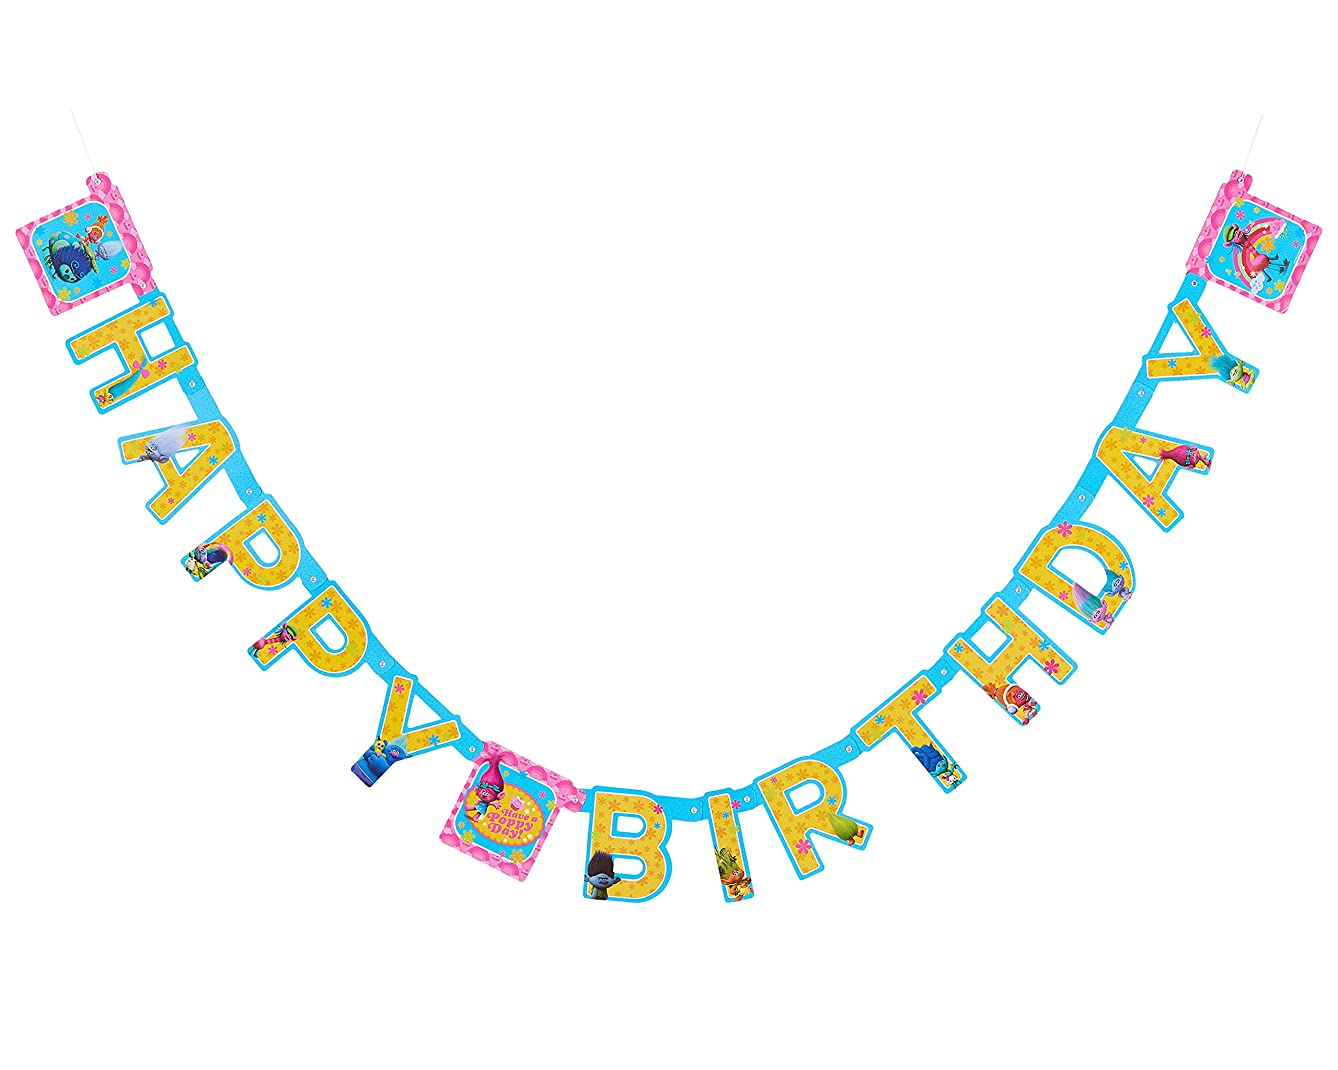 American Greetings Trolls Birthday Party Banner